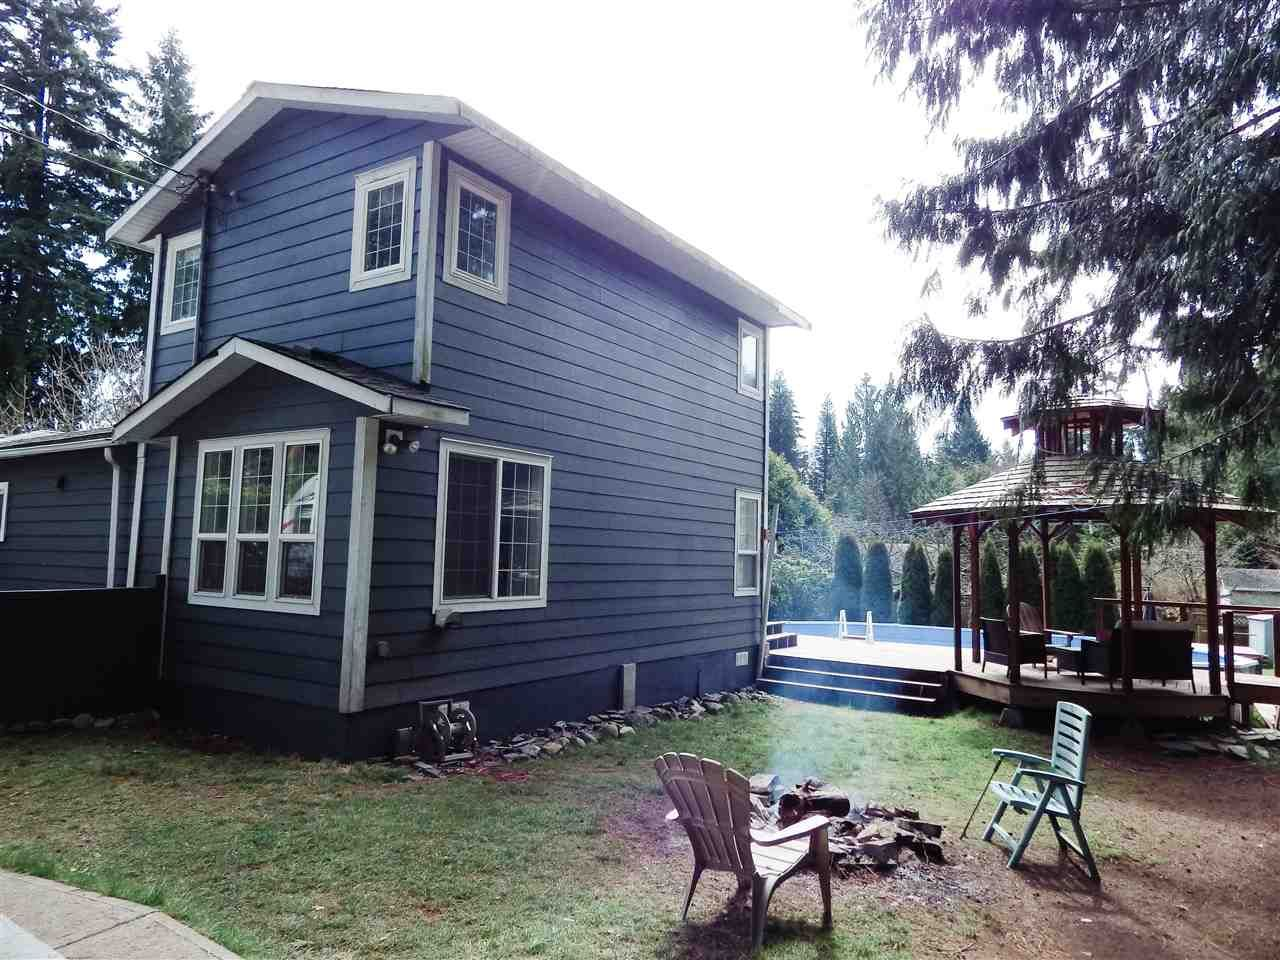 Photo 13: Photos: 1167 CHASTER Road in Gibsons: Gibsons & Area House for sale (Sunshine Coast)  : MLS®# R2449547